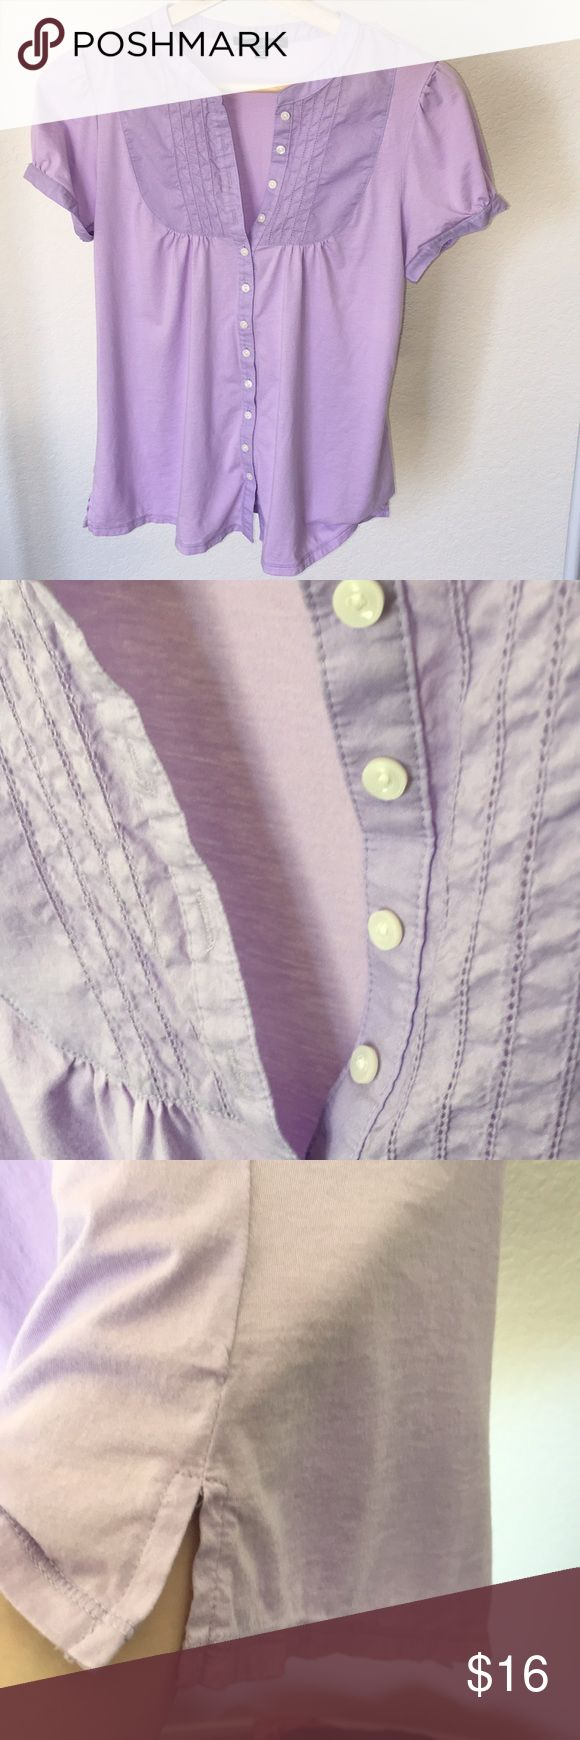 Gap short sleeve lilac button down Light lilac, short sleeve button down top by Gap. Fitted with buttons on the sleeves.  Hem is slitted at the sides.  Body:  60% Pima cotton, 40% modal. Yoke/trim:  100% cotton. GAP Tops Button Down Shirts